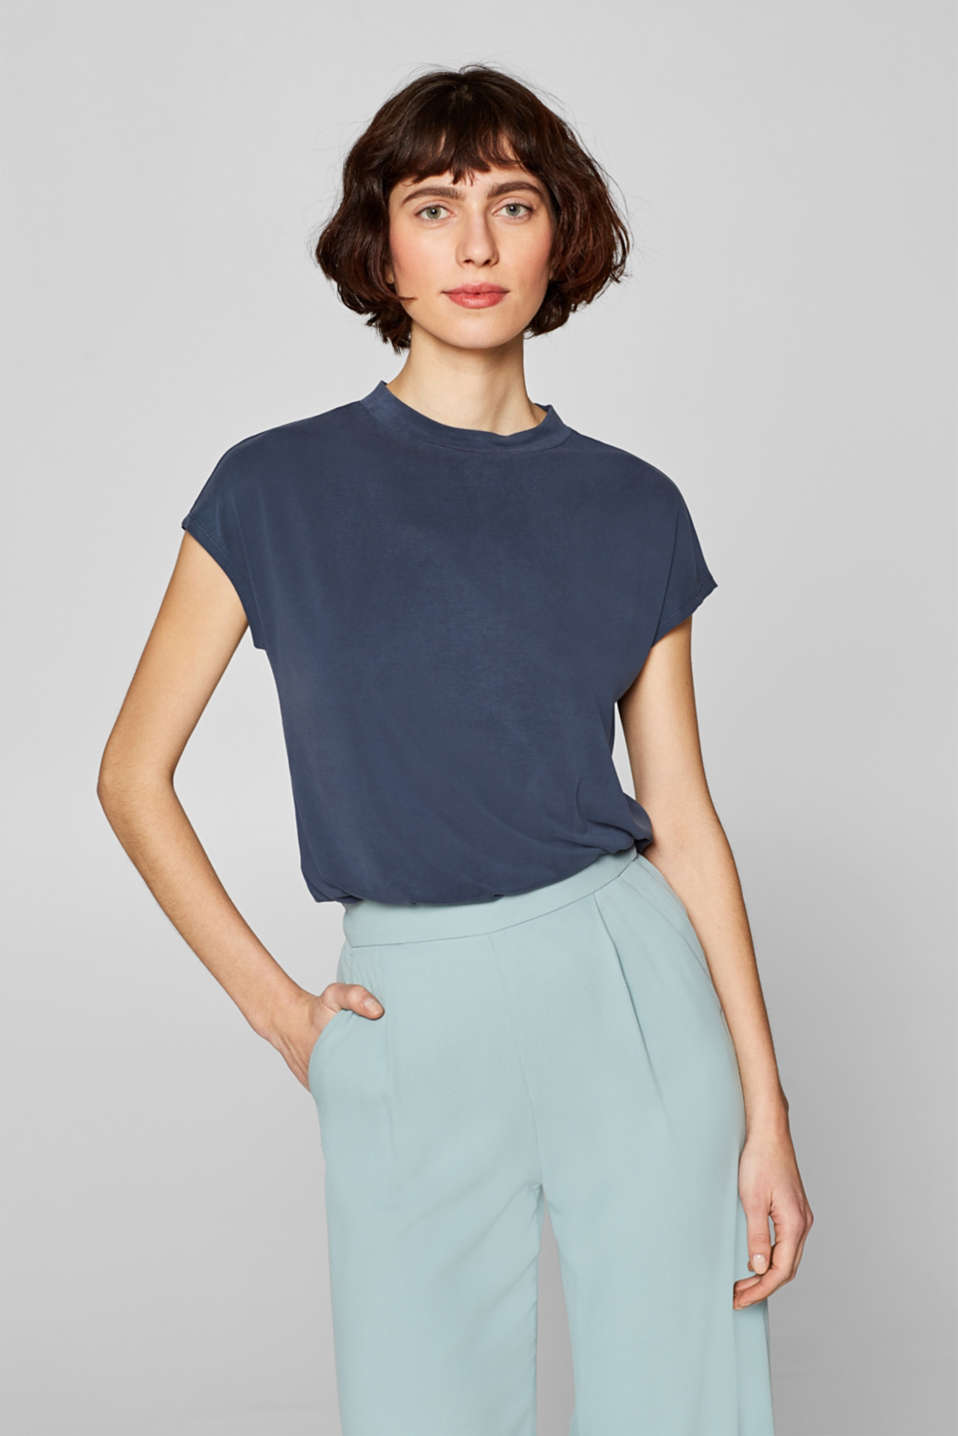 Esprit - T-shirt in a flowing modal blend